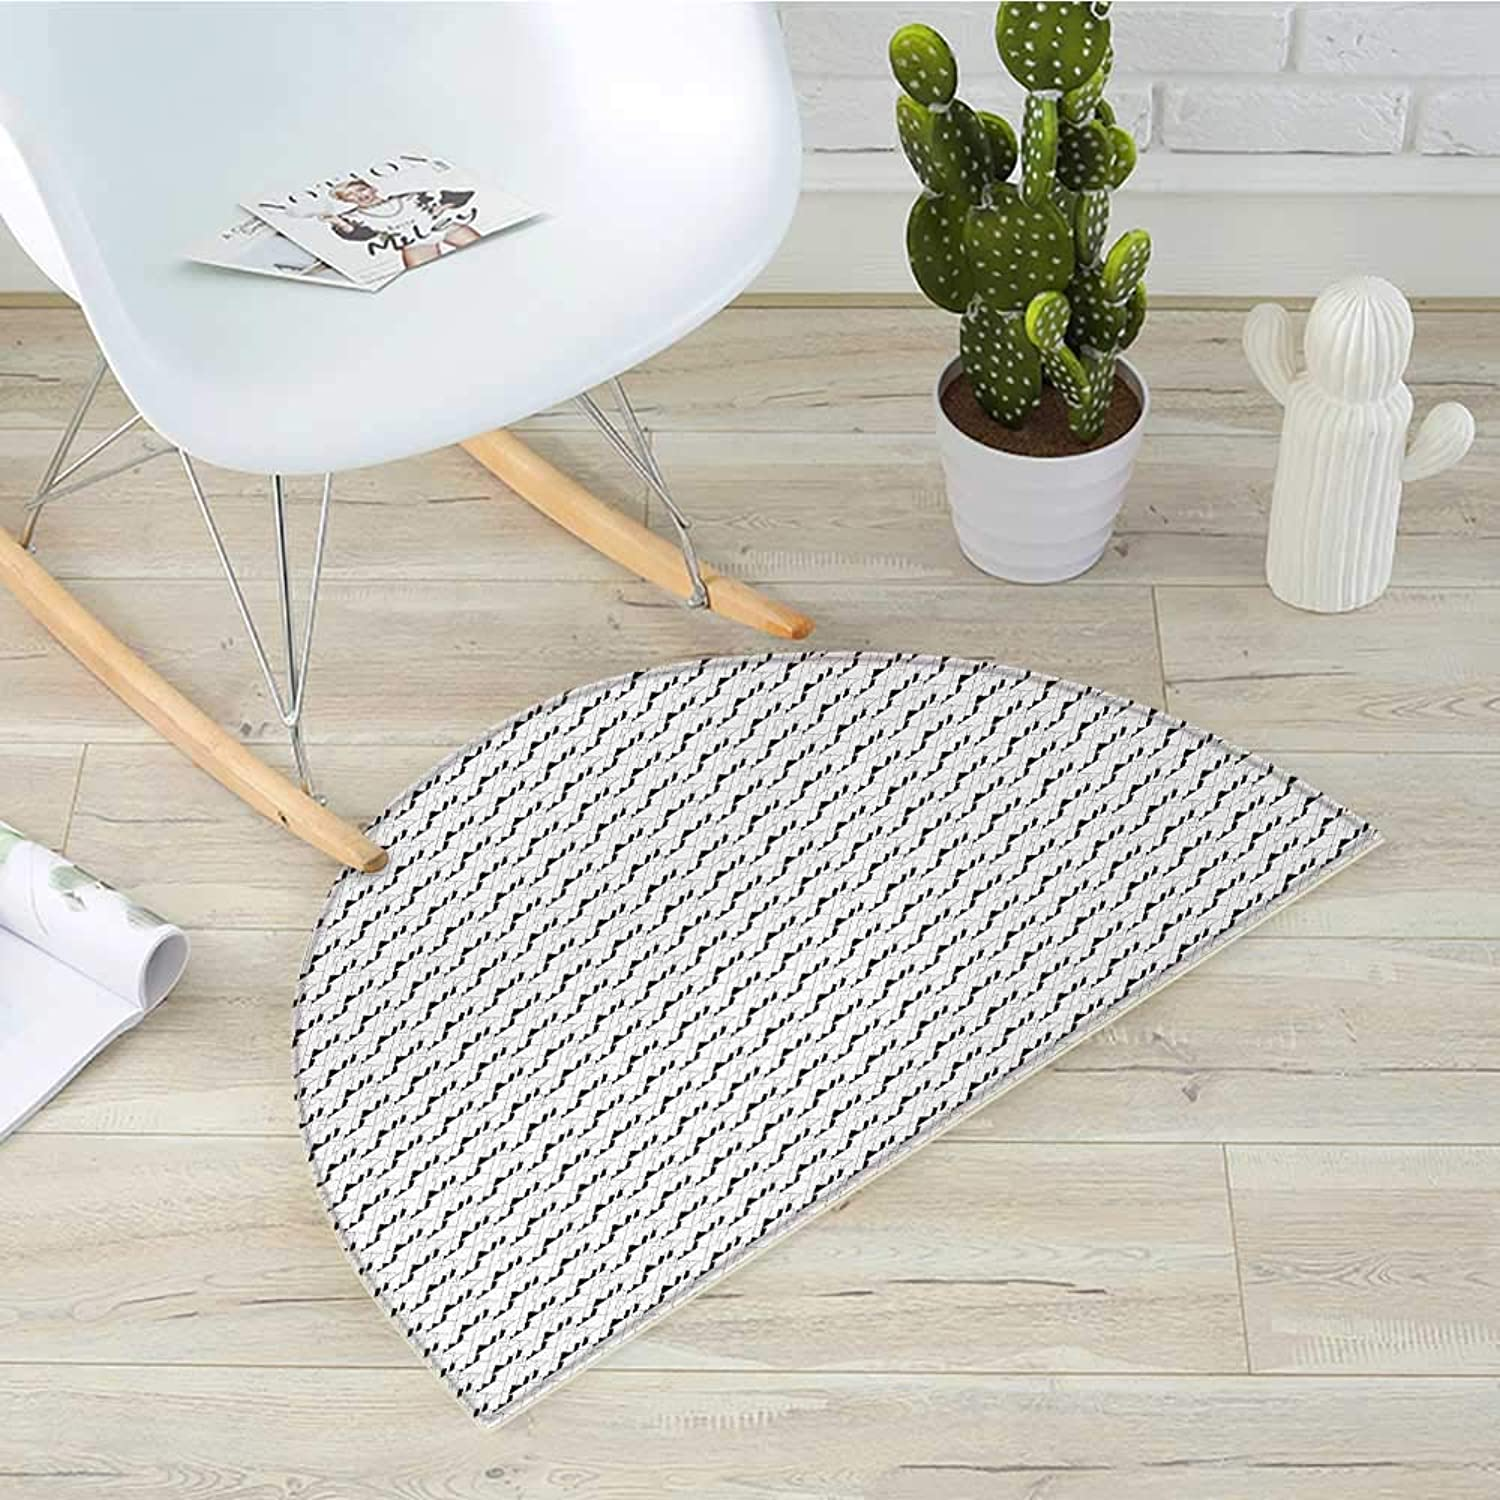 Black and White Half Round Door mats Abstract Triangles and Trapezoids Monochrome Geometric Lines Illustration Bathroom Mat H 39.3  xD 59  Black White